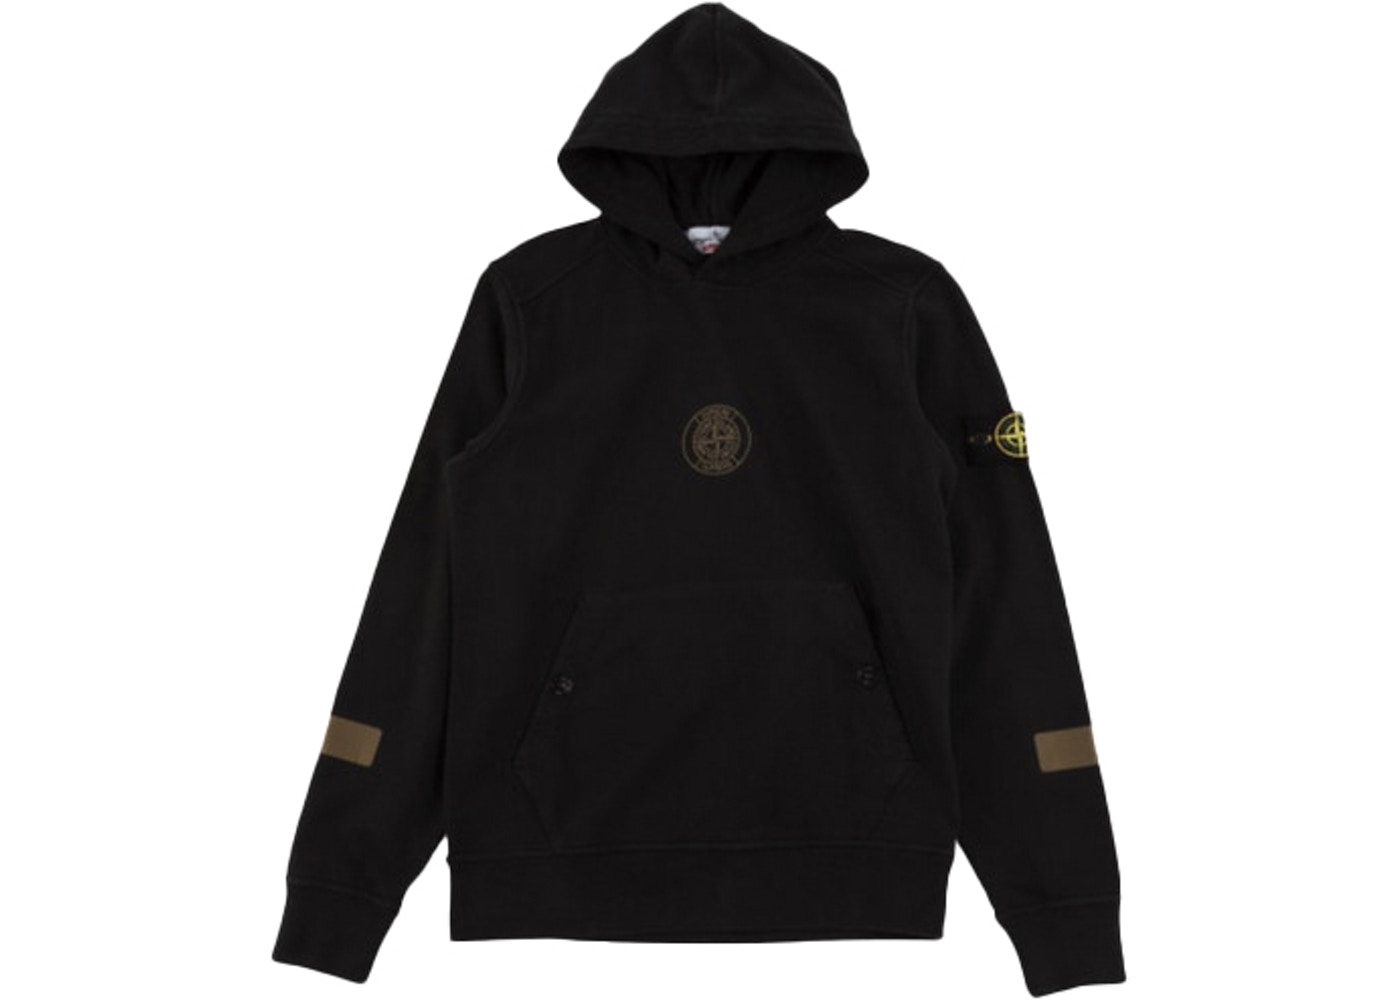 buy popular ab051 9a3bb Supreme Stone Island Hooded Sweatshirt Black - FW17